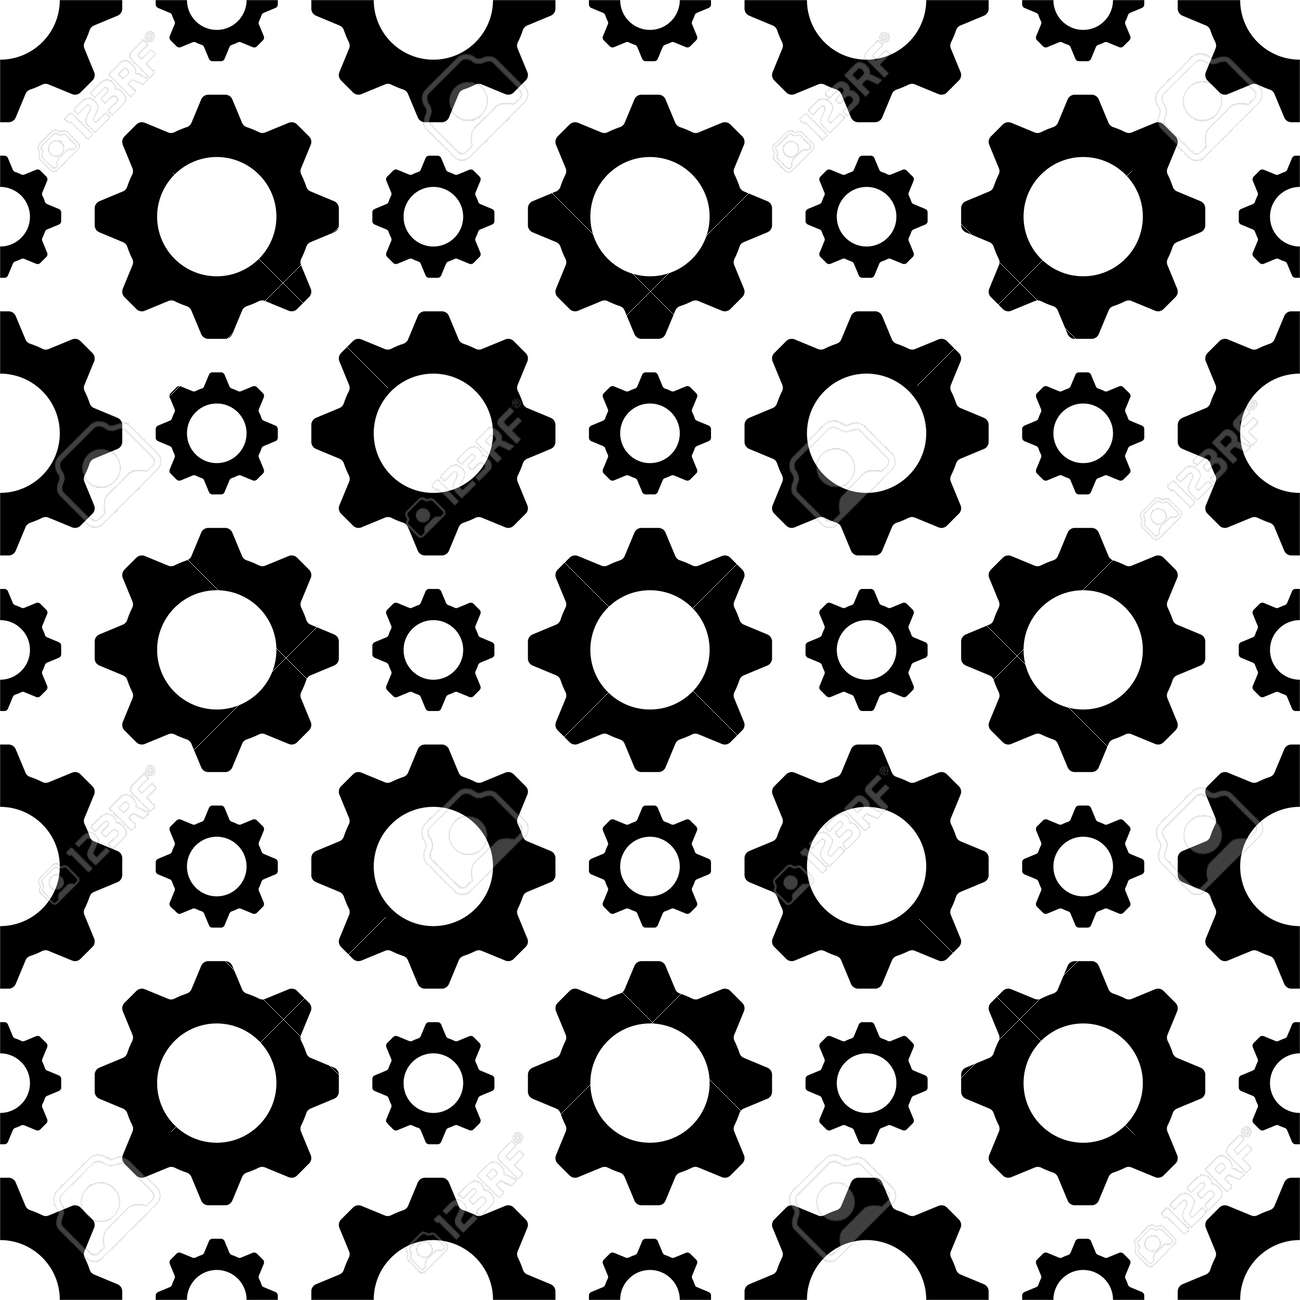 Setting Icon Seamless Pattern, Gear, User Preference Setting Vector Art Illustration - 149571104